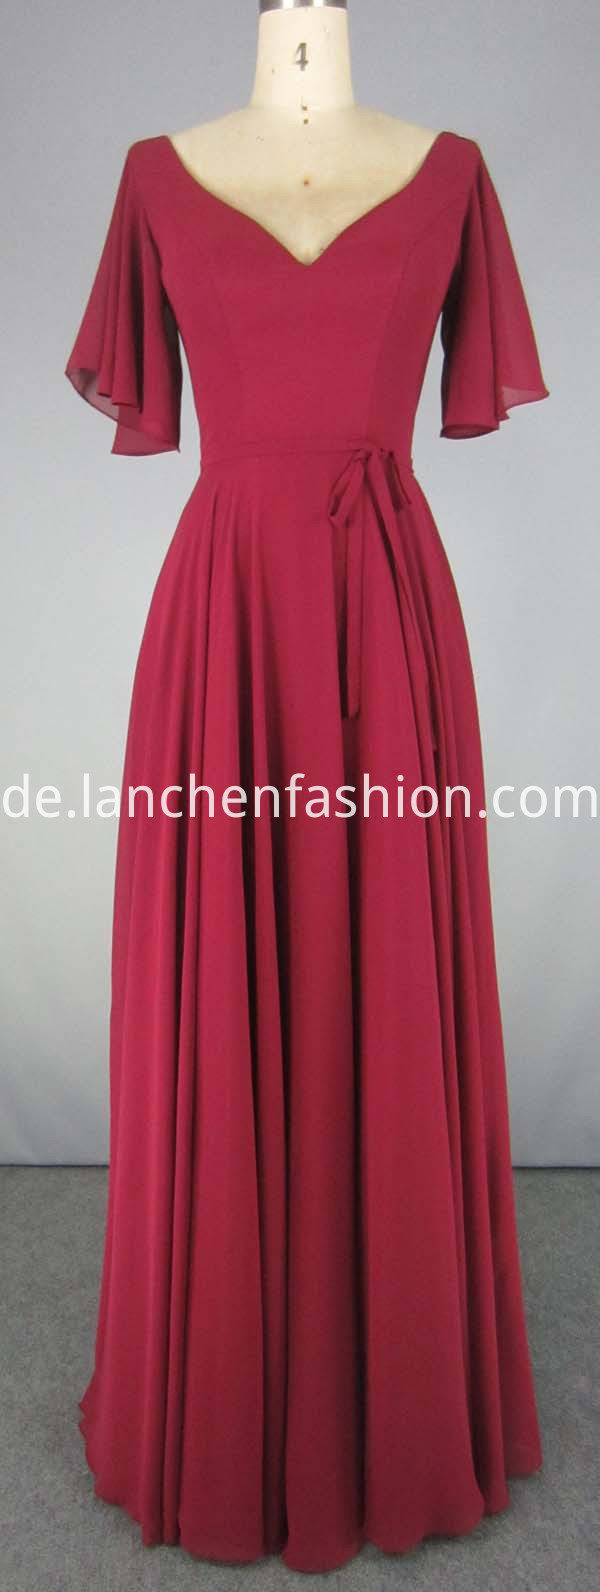 Red Cocktail Dresses For Juniors